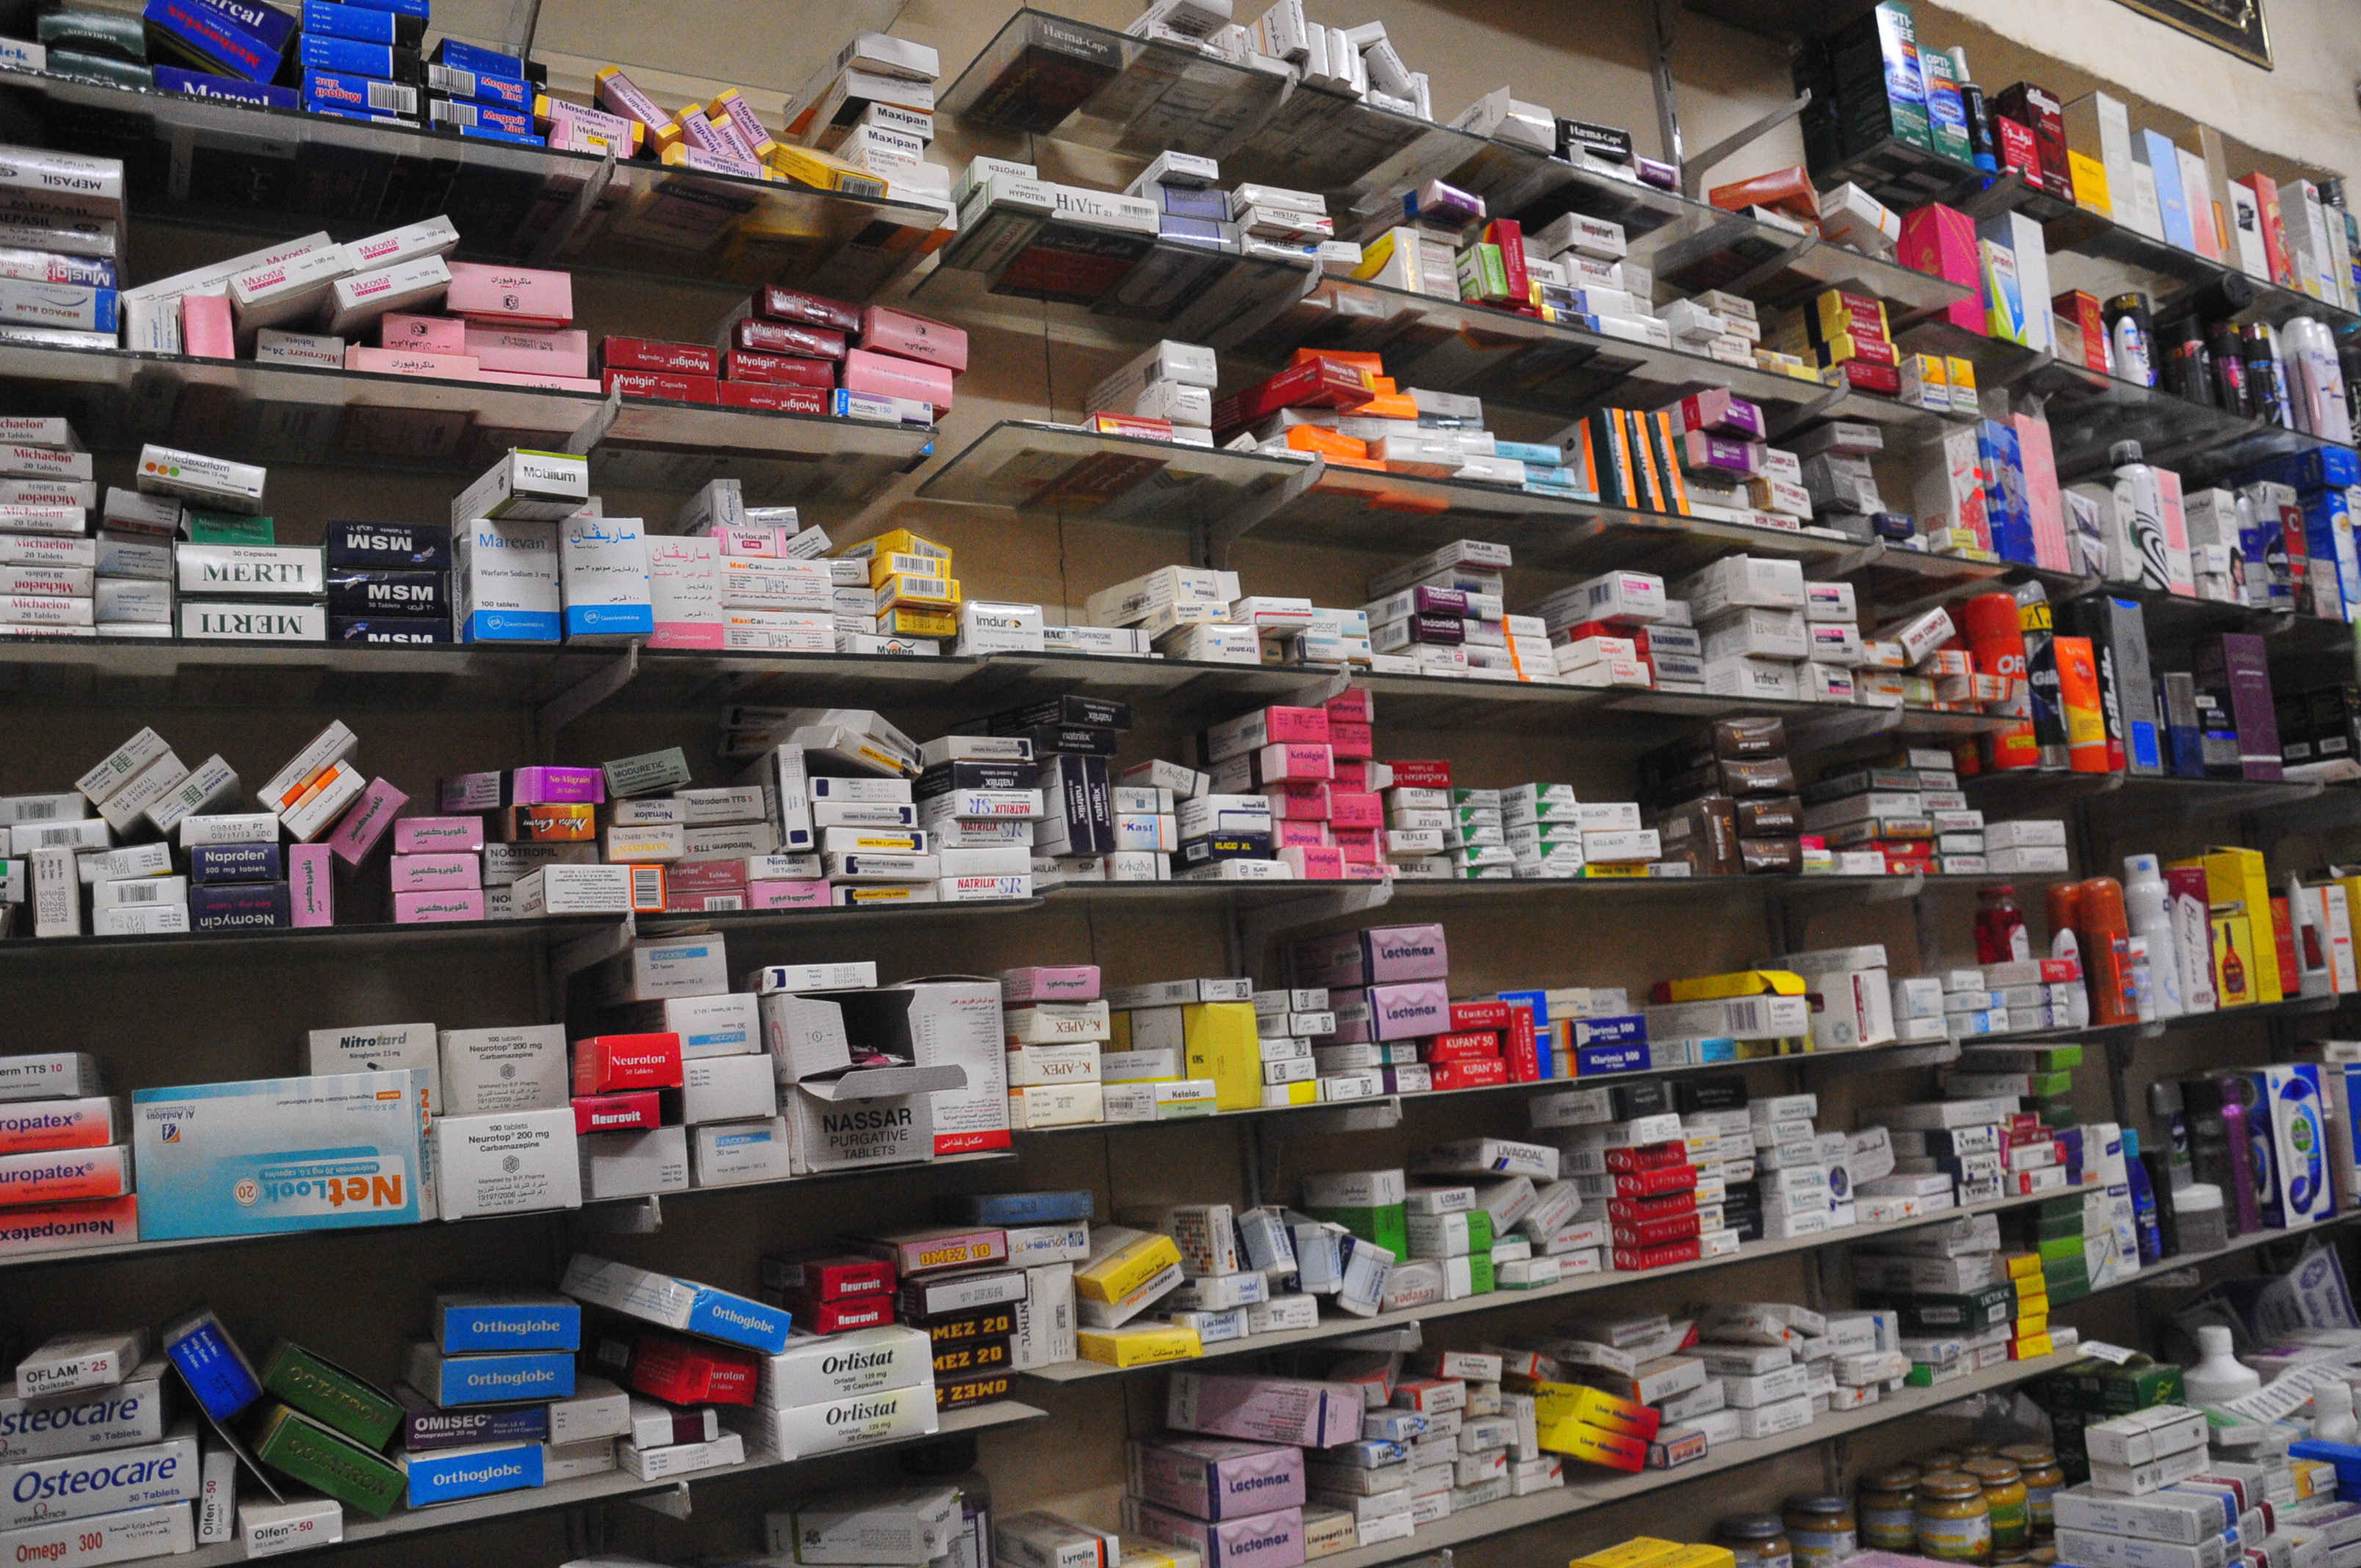 The Ministry of Health announced on Wednesday its intention to prepare a draft to amend the Egyptian pharmacy law in order to combat unlicensed pharmaceutical products, as well as illegal pharmacies. (DNE Photo)